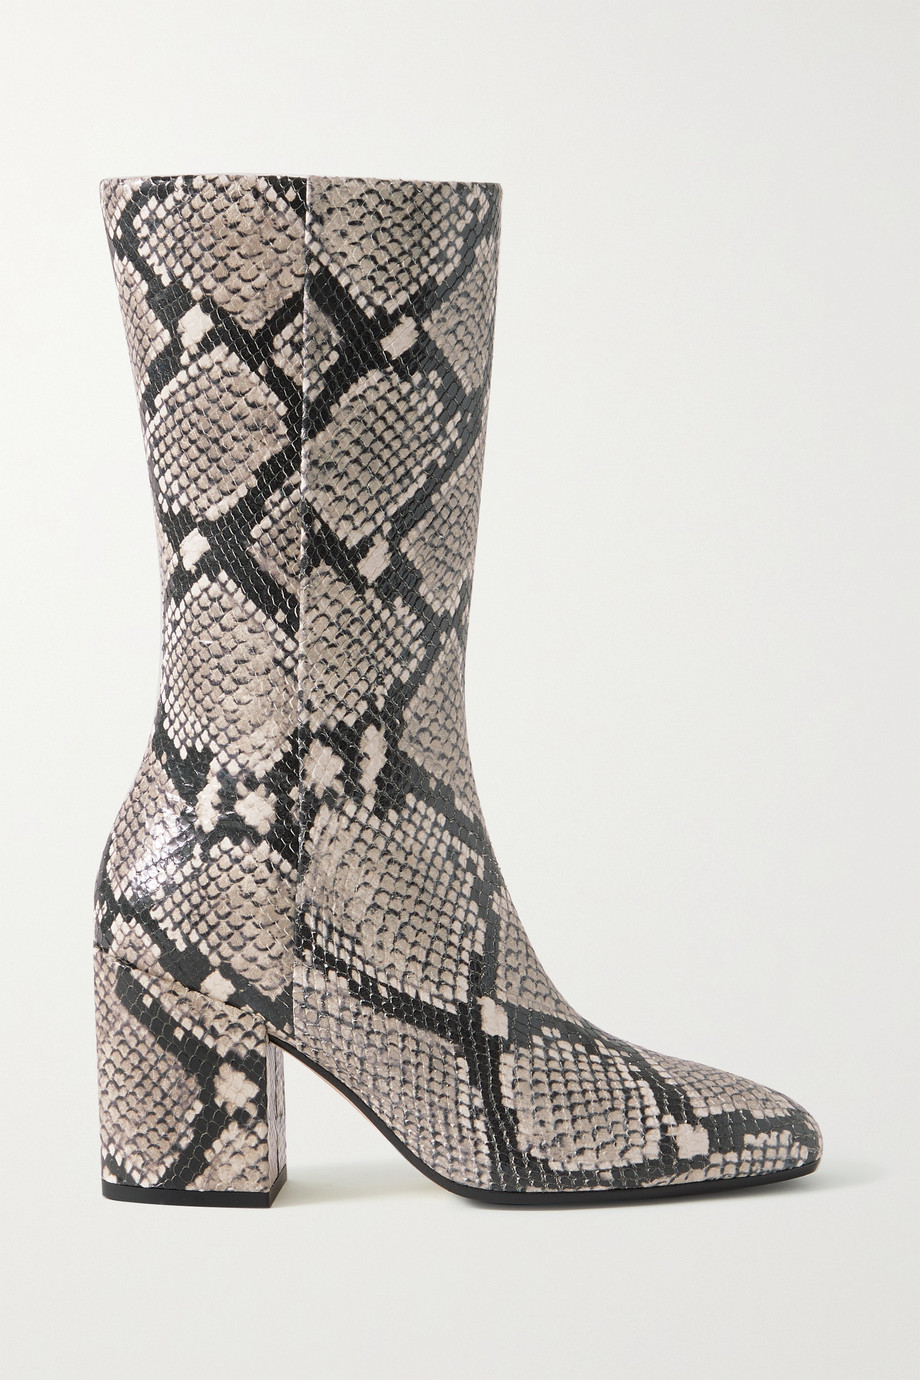 aeyde Lori snake-effect leather boots